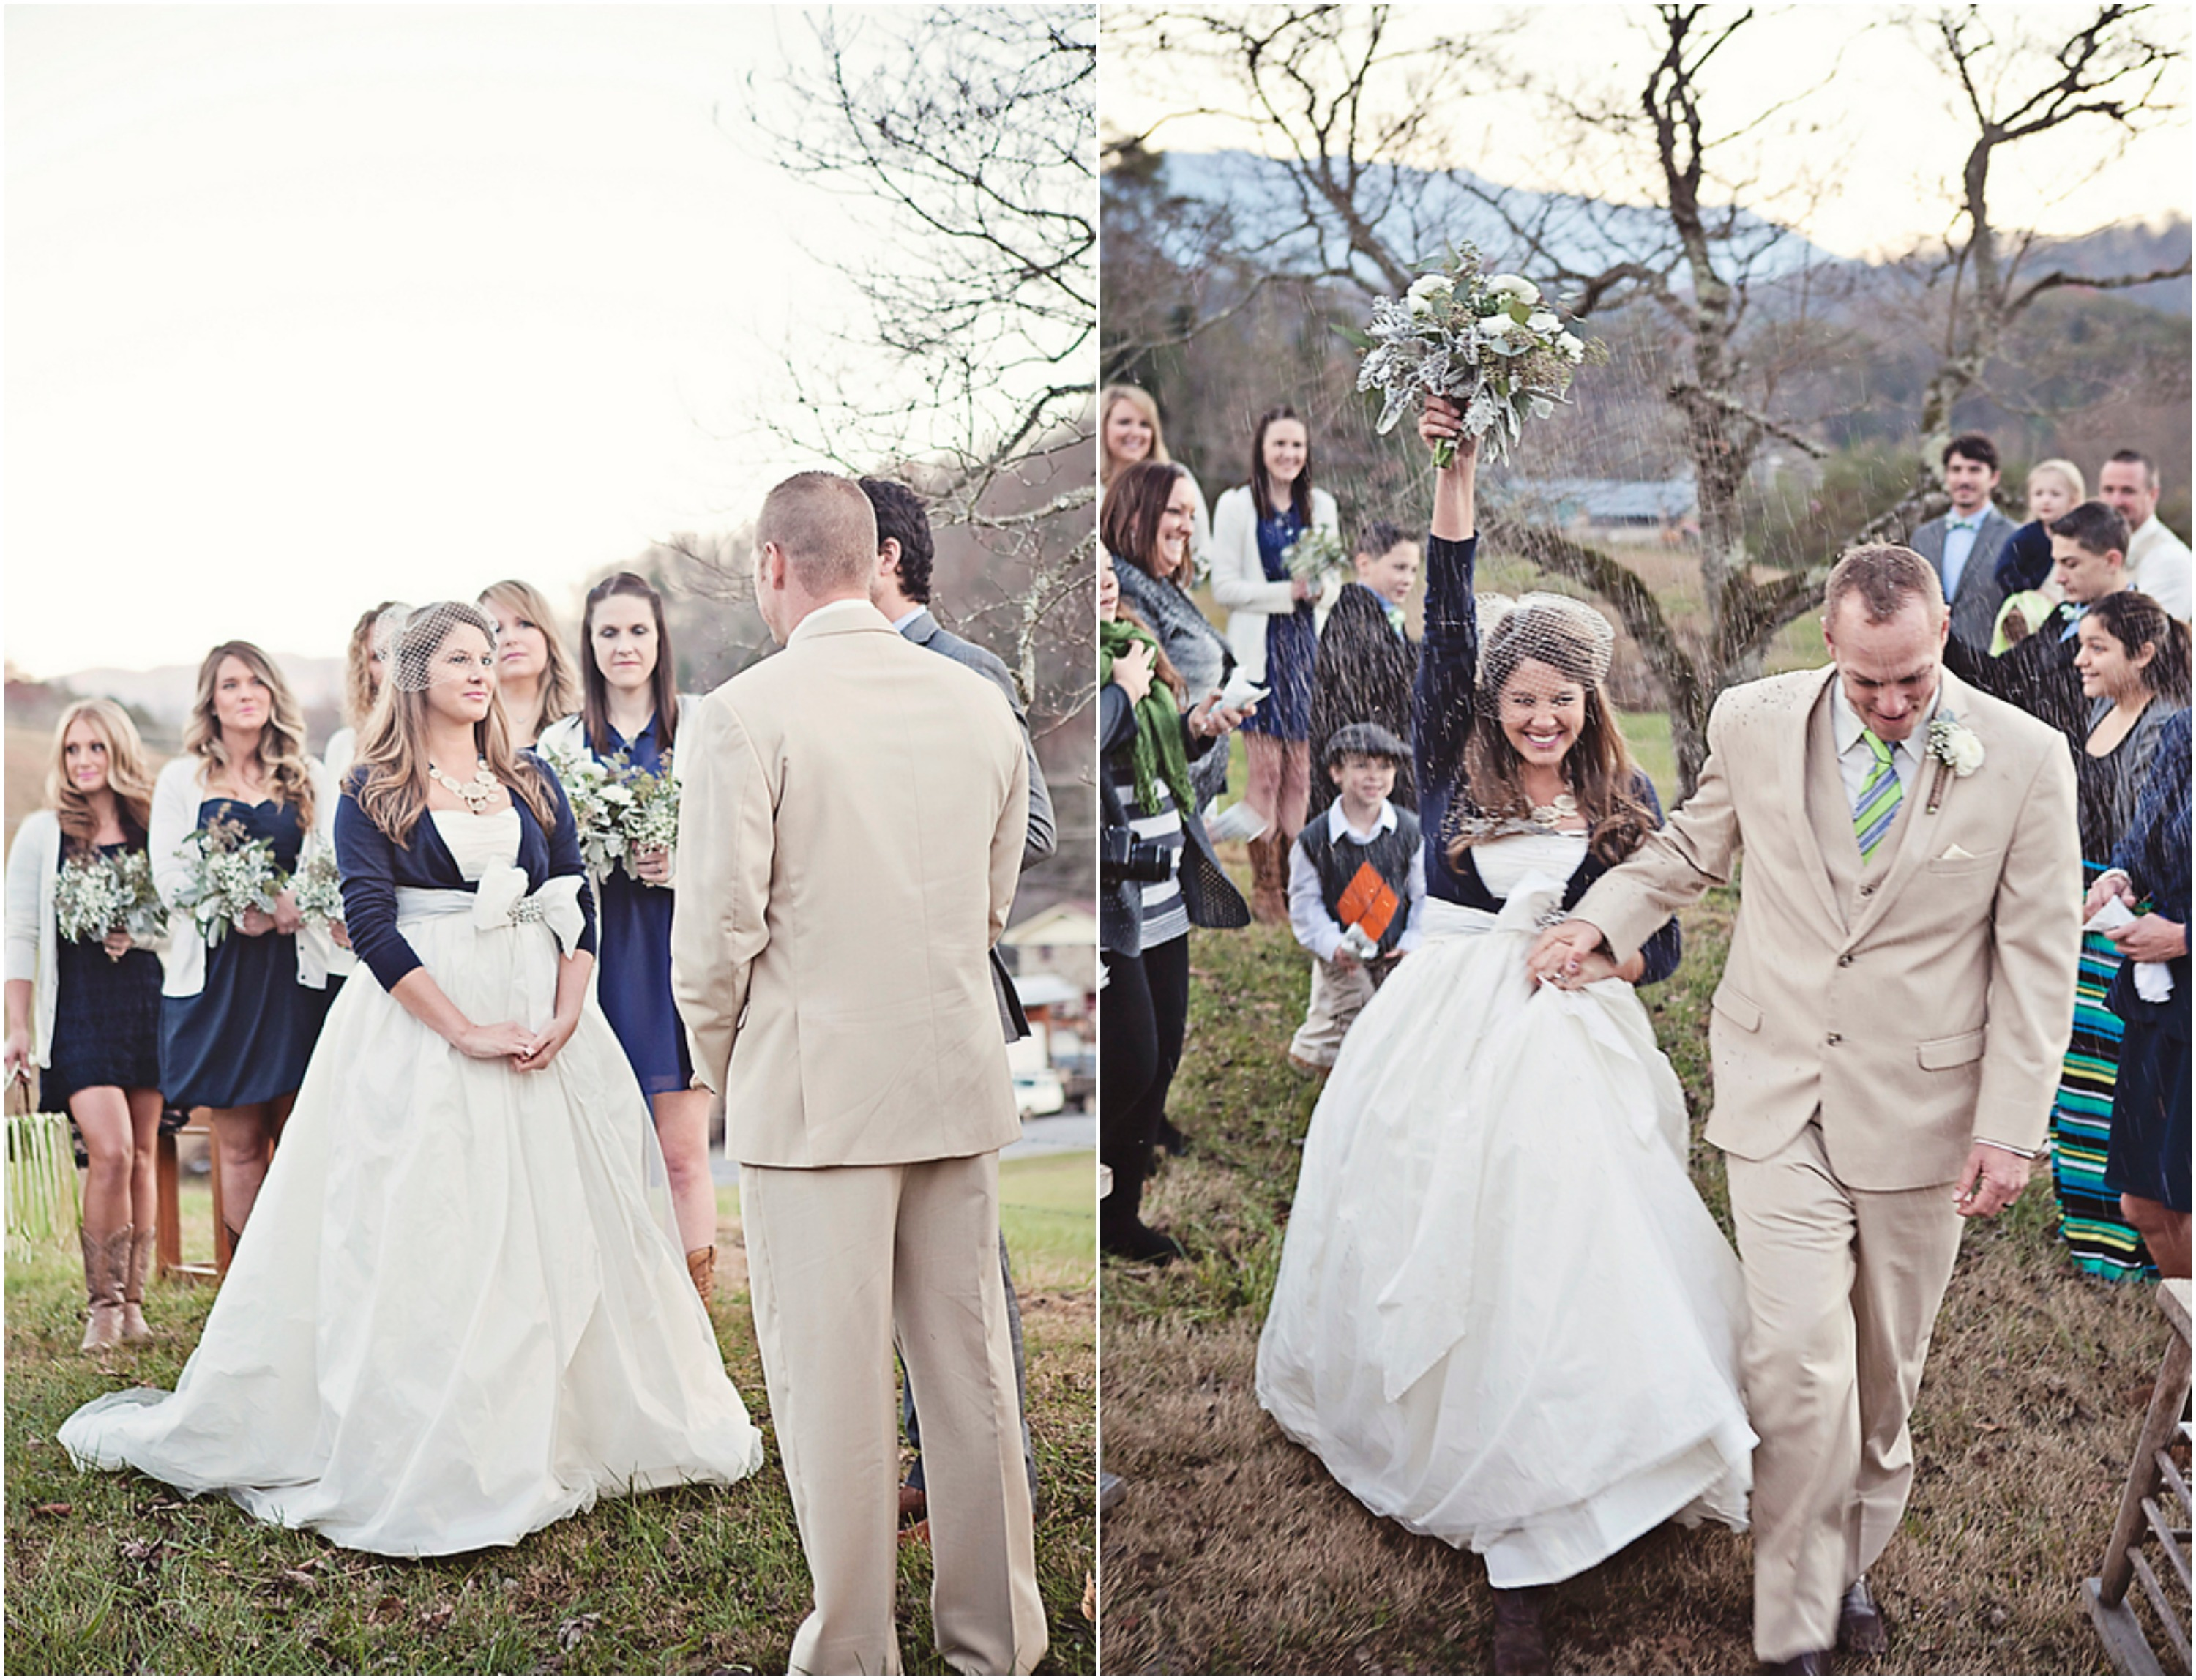 Outdoor Wedding: Outdoor Country Wedding Ceremony